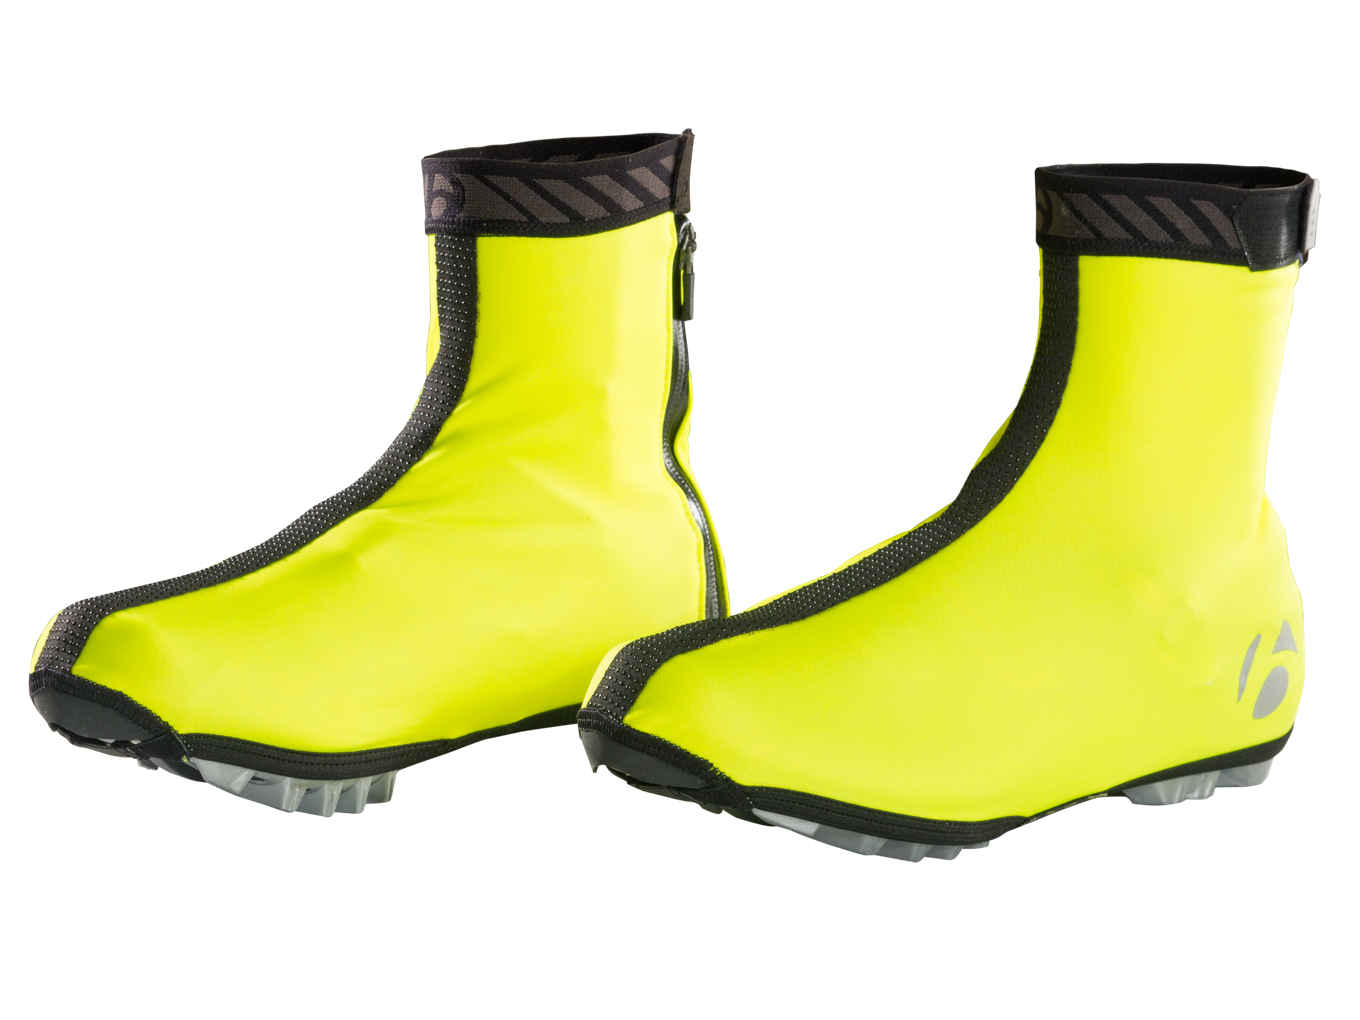 Bontrager Halo S1 Softshell Shoe Cover Unisex Visibility Yellow S nstqtE